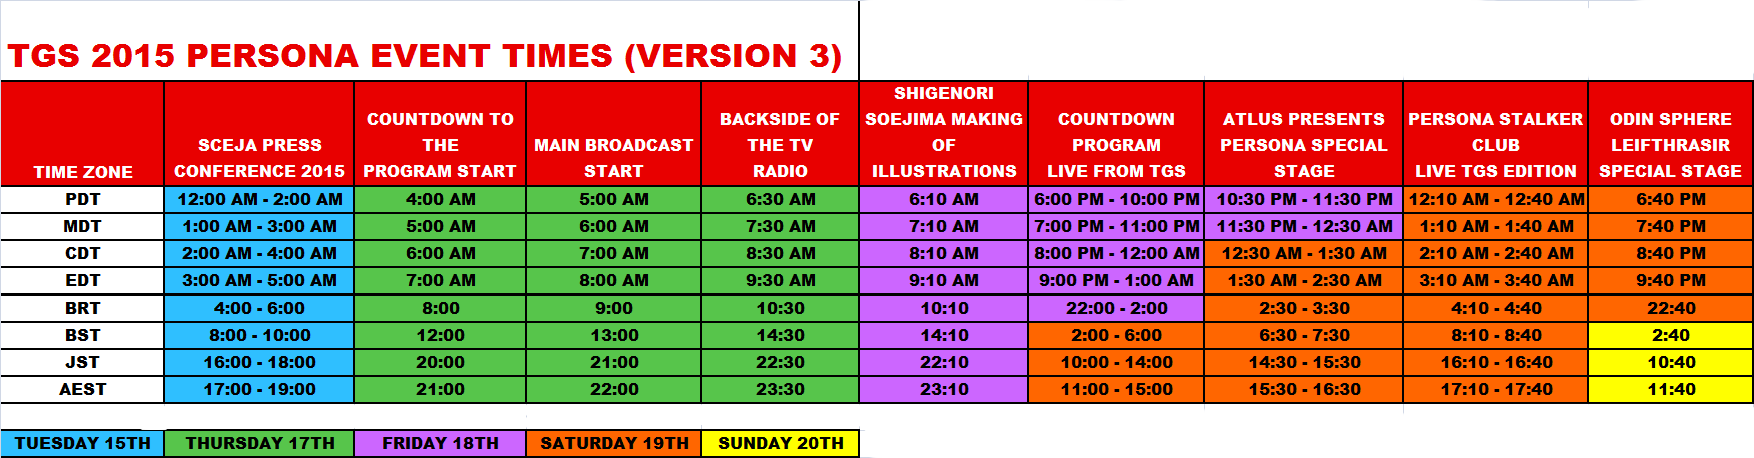 Schedule Version 3